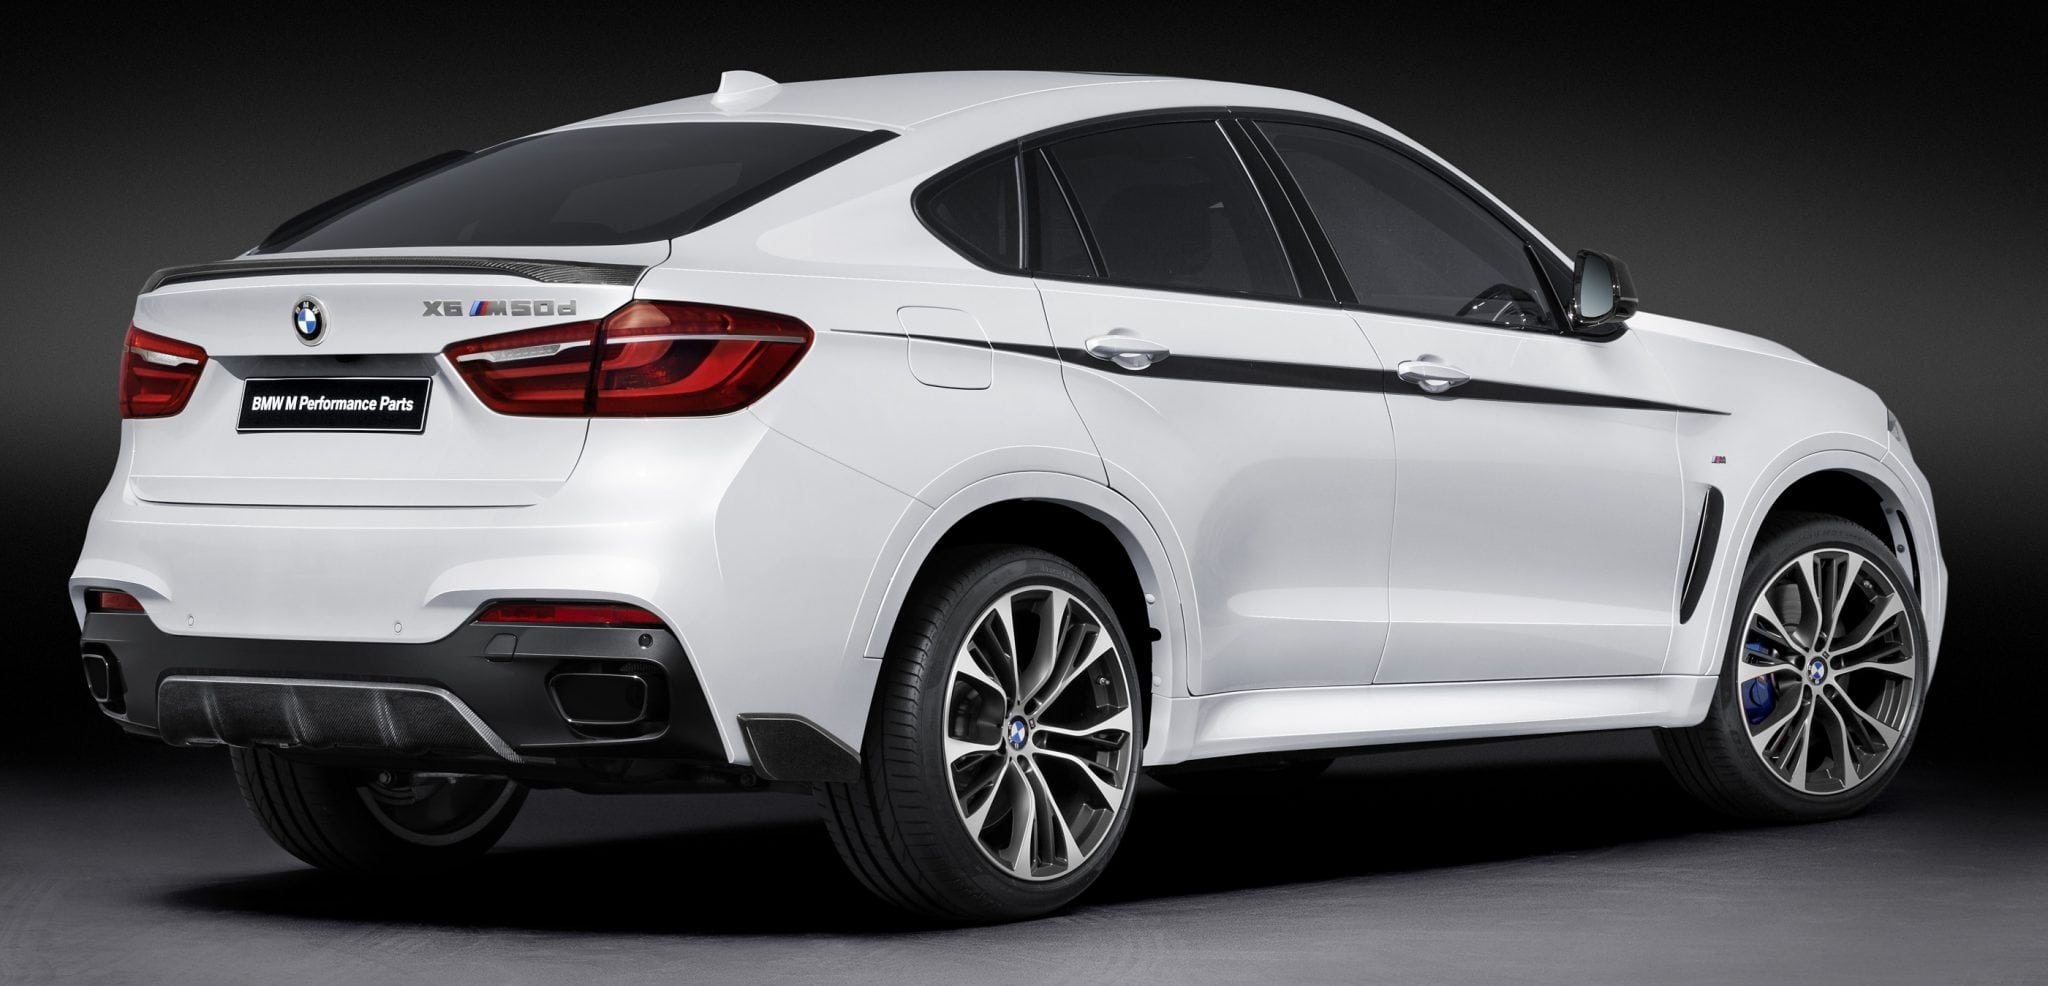 2018 bmw x6 m prices spy shoot 2048 x 986 auto car update Pictures